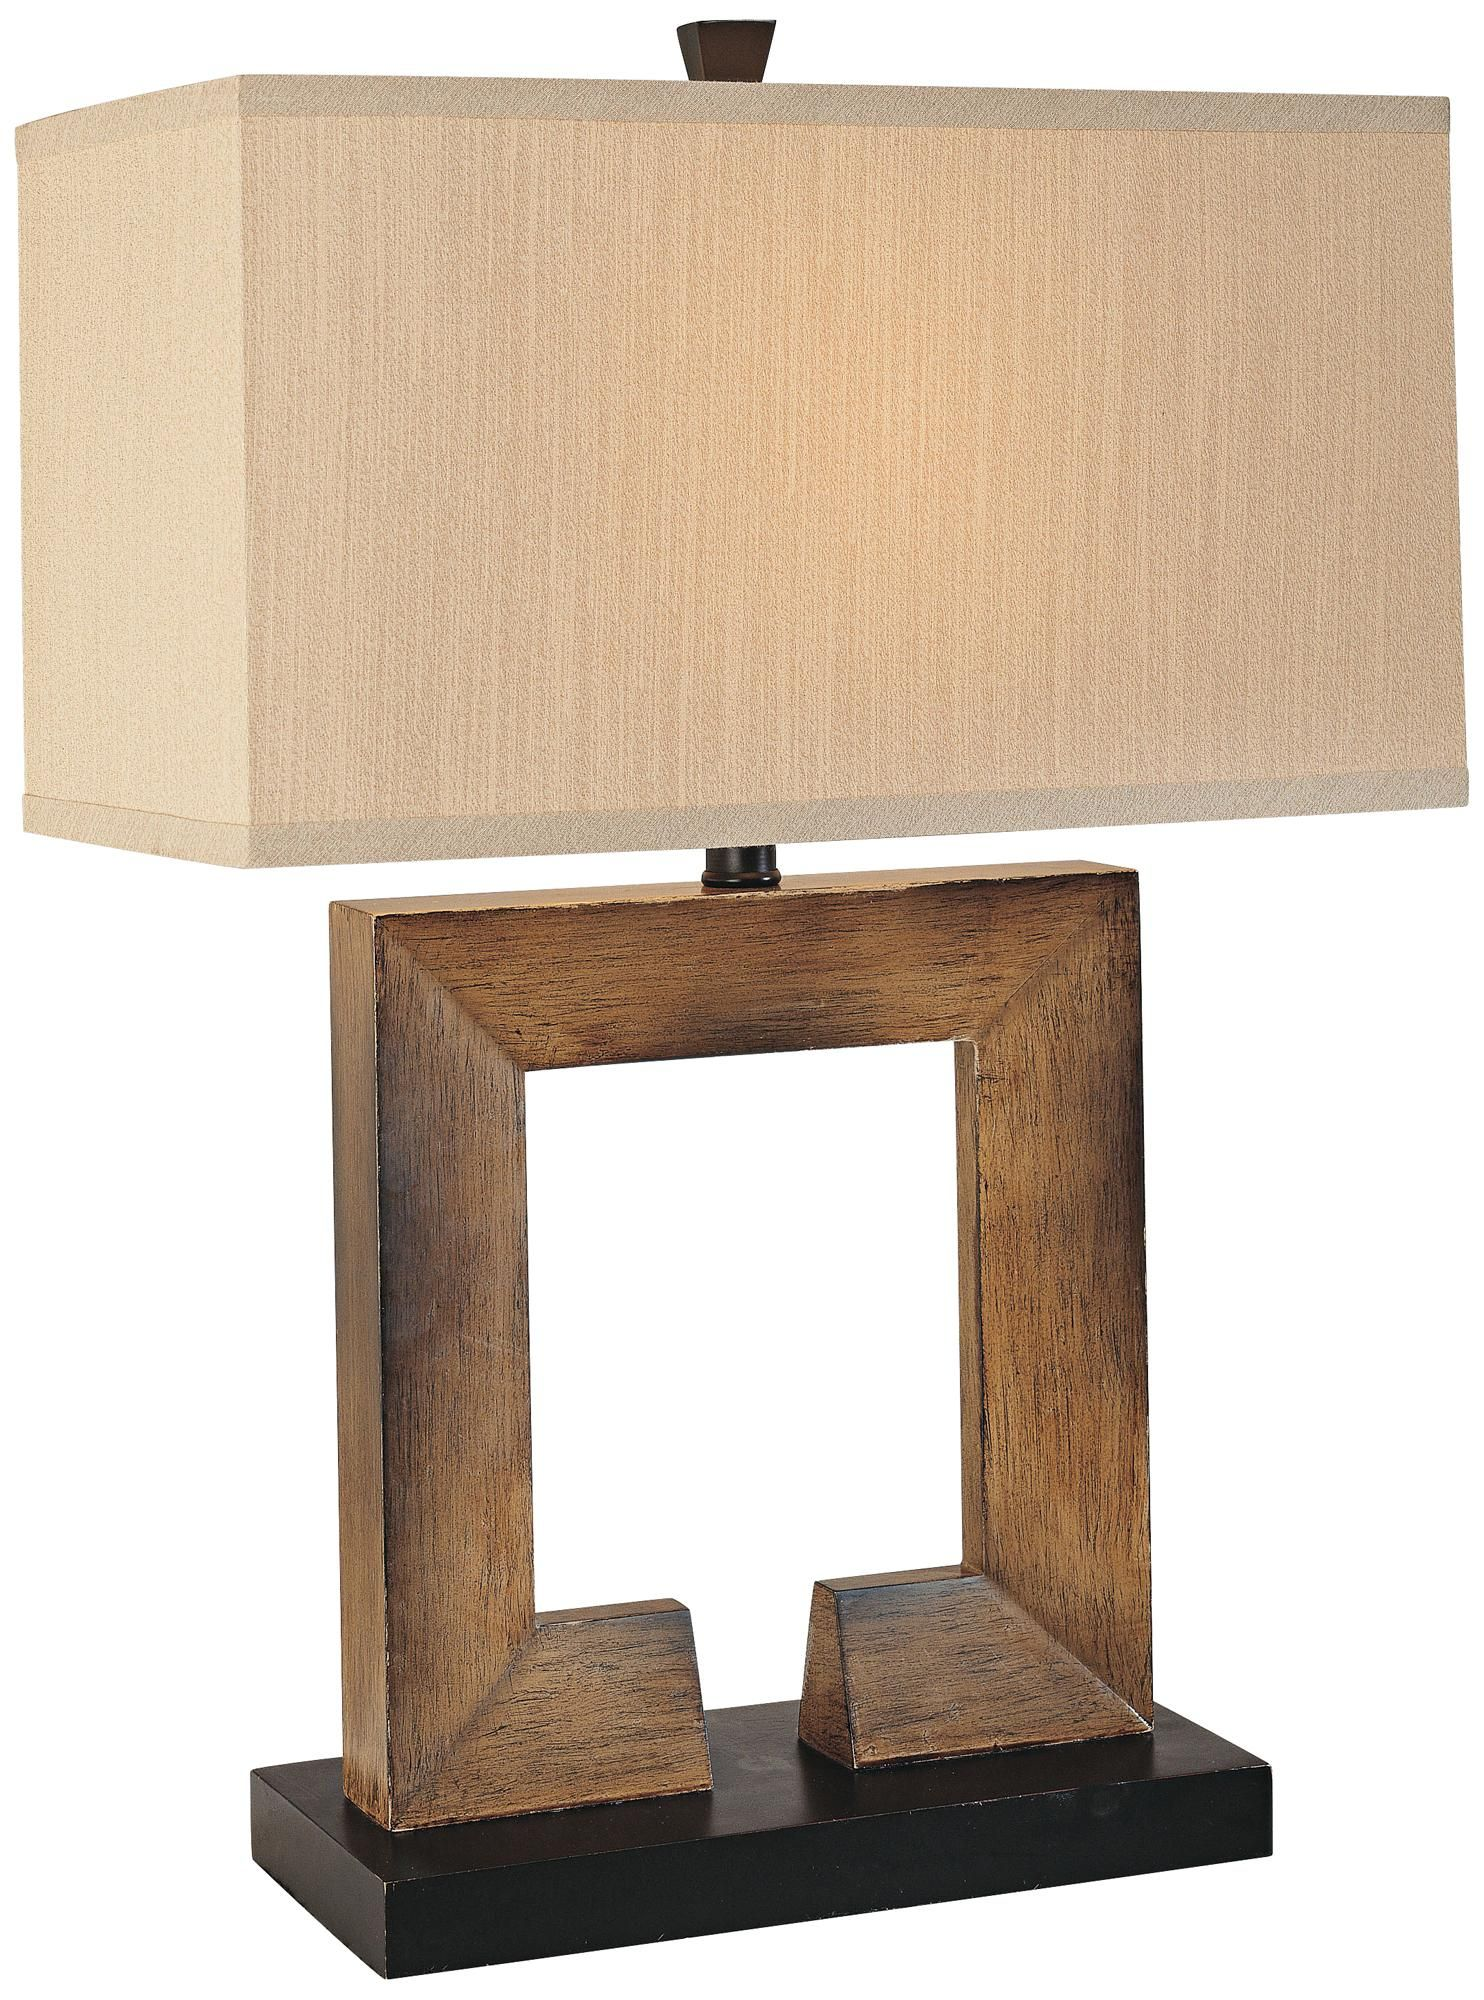 Ambience collection faux wood square table lamp 2534 high tan ambience collection faux wood square table lamp 2534 high tan shade geotapseo Choice Image